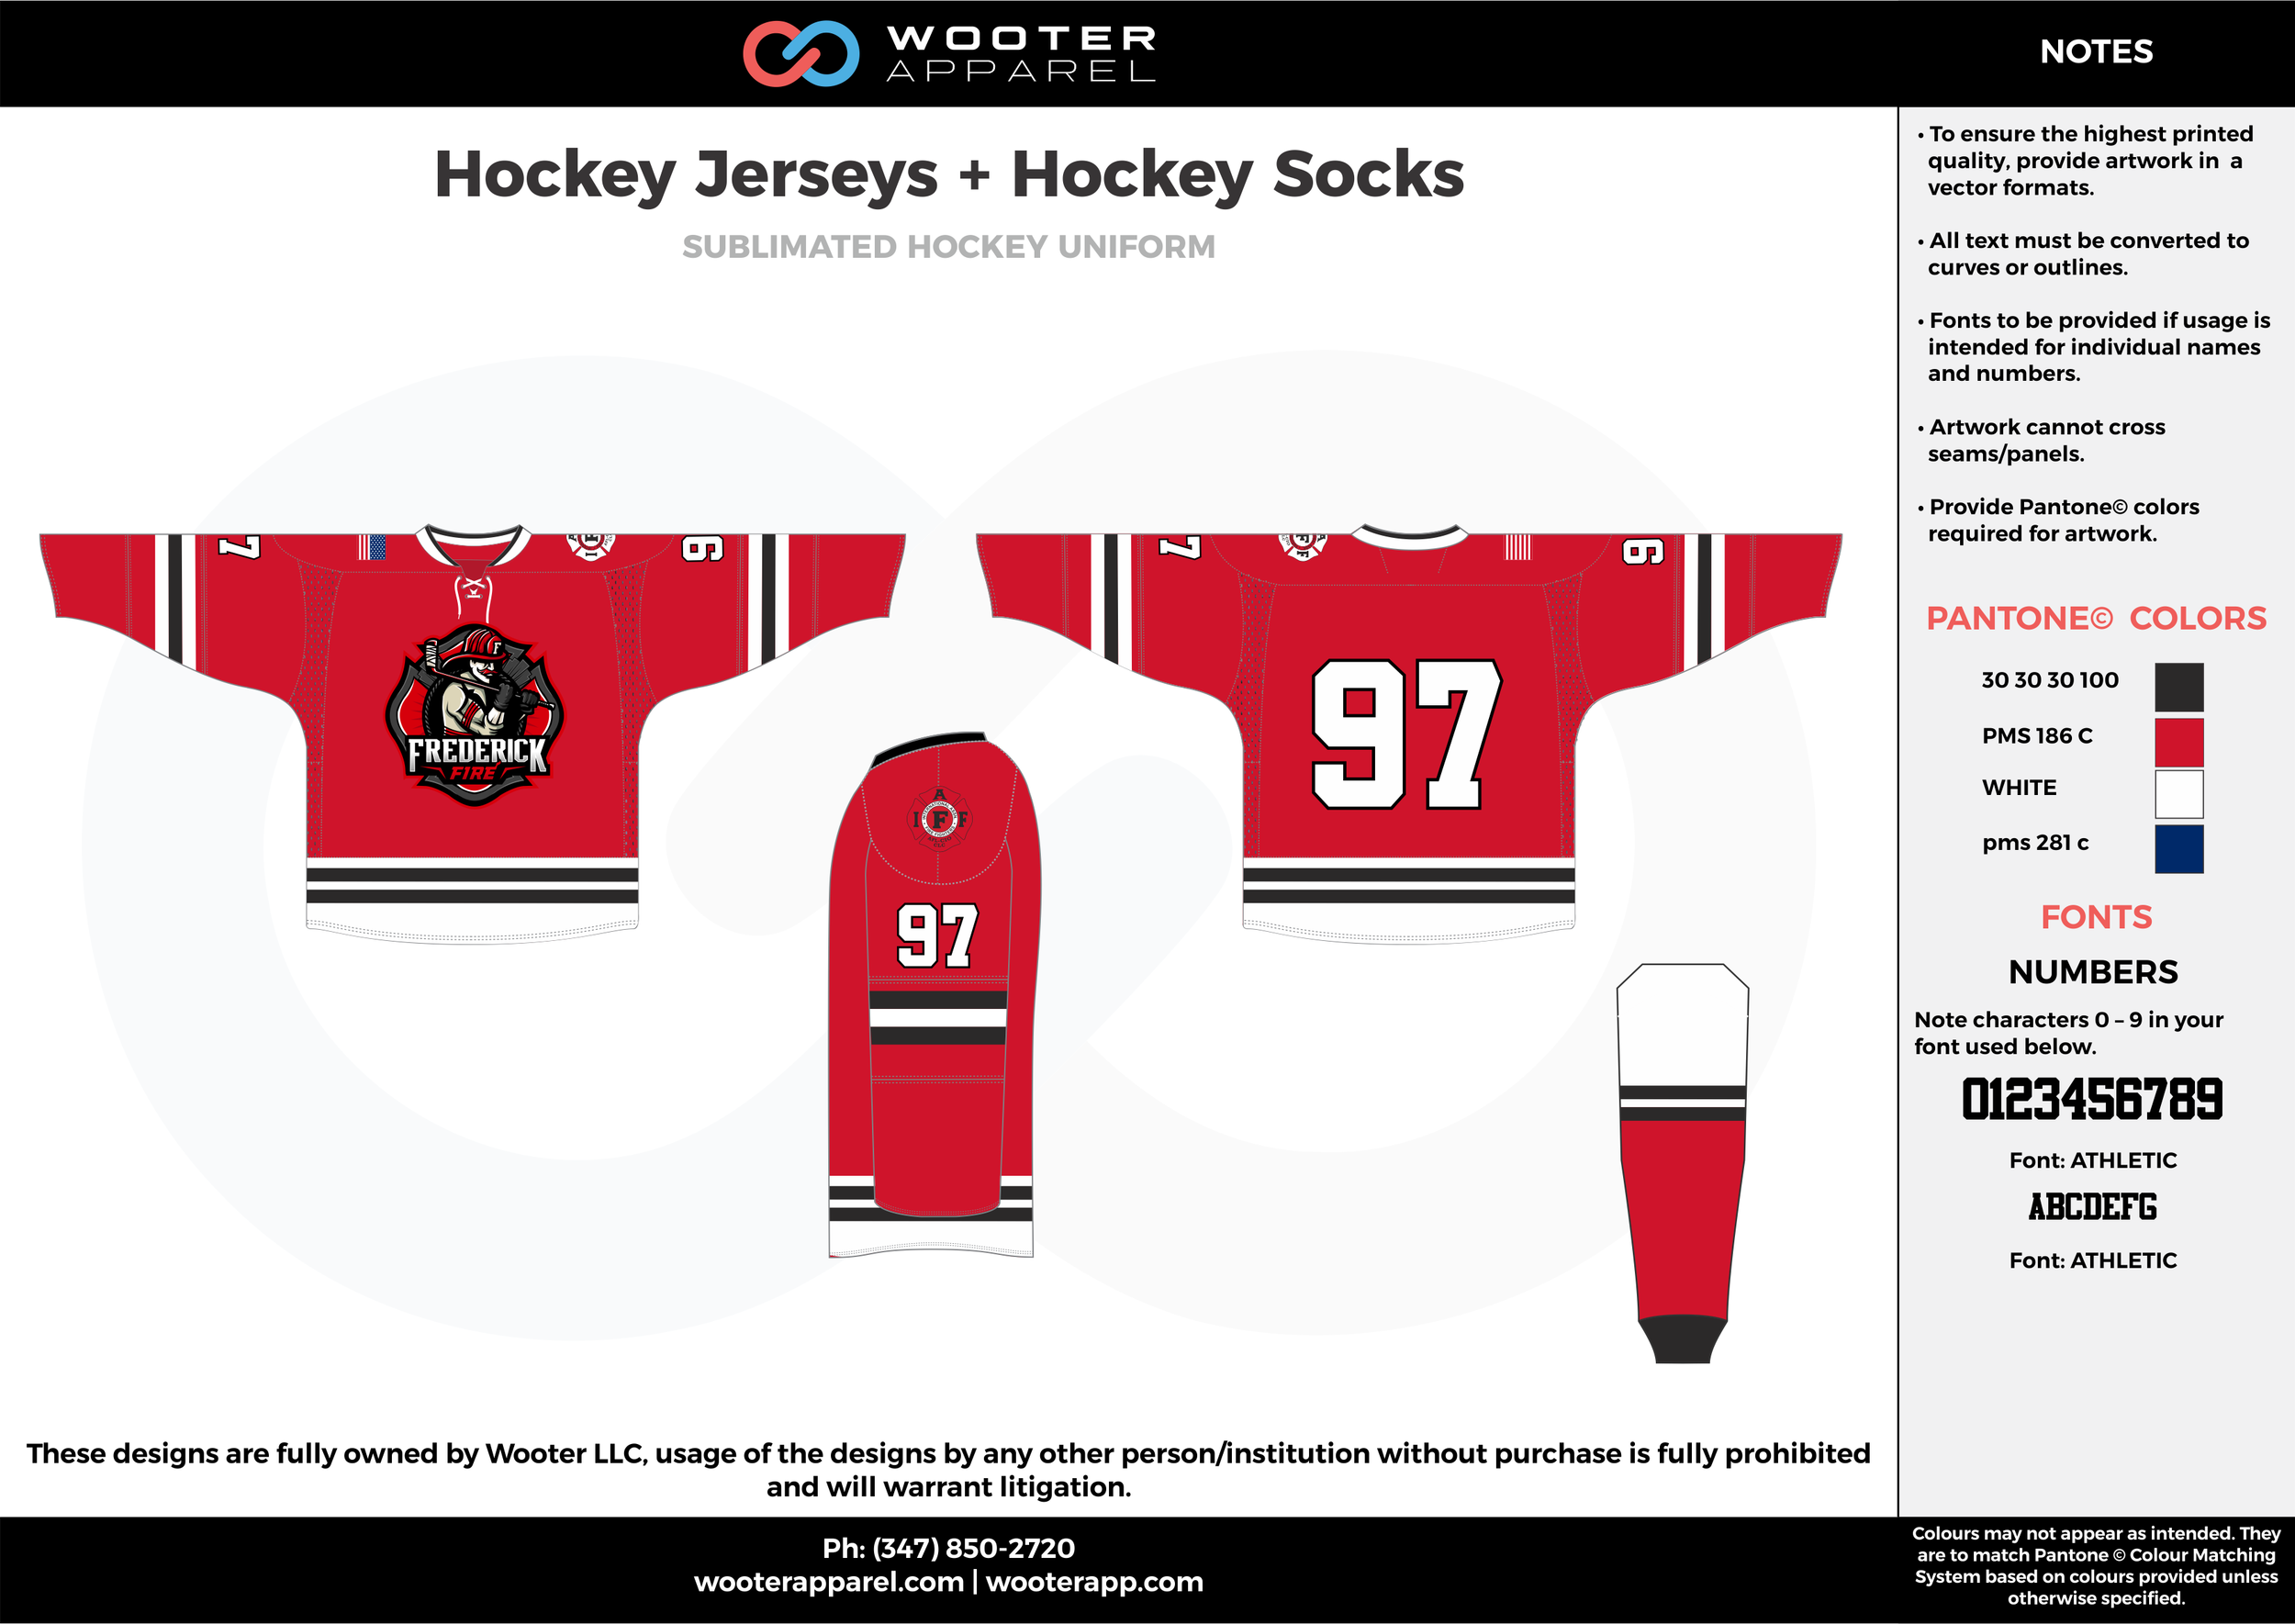 Hockey Jerseys + Hockey Socks red blue white black hockey uniforms jerseys socks